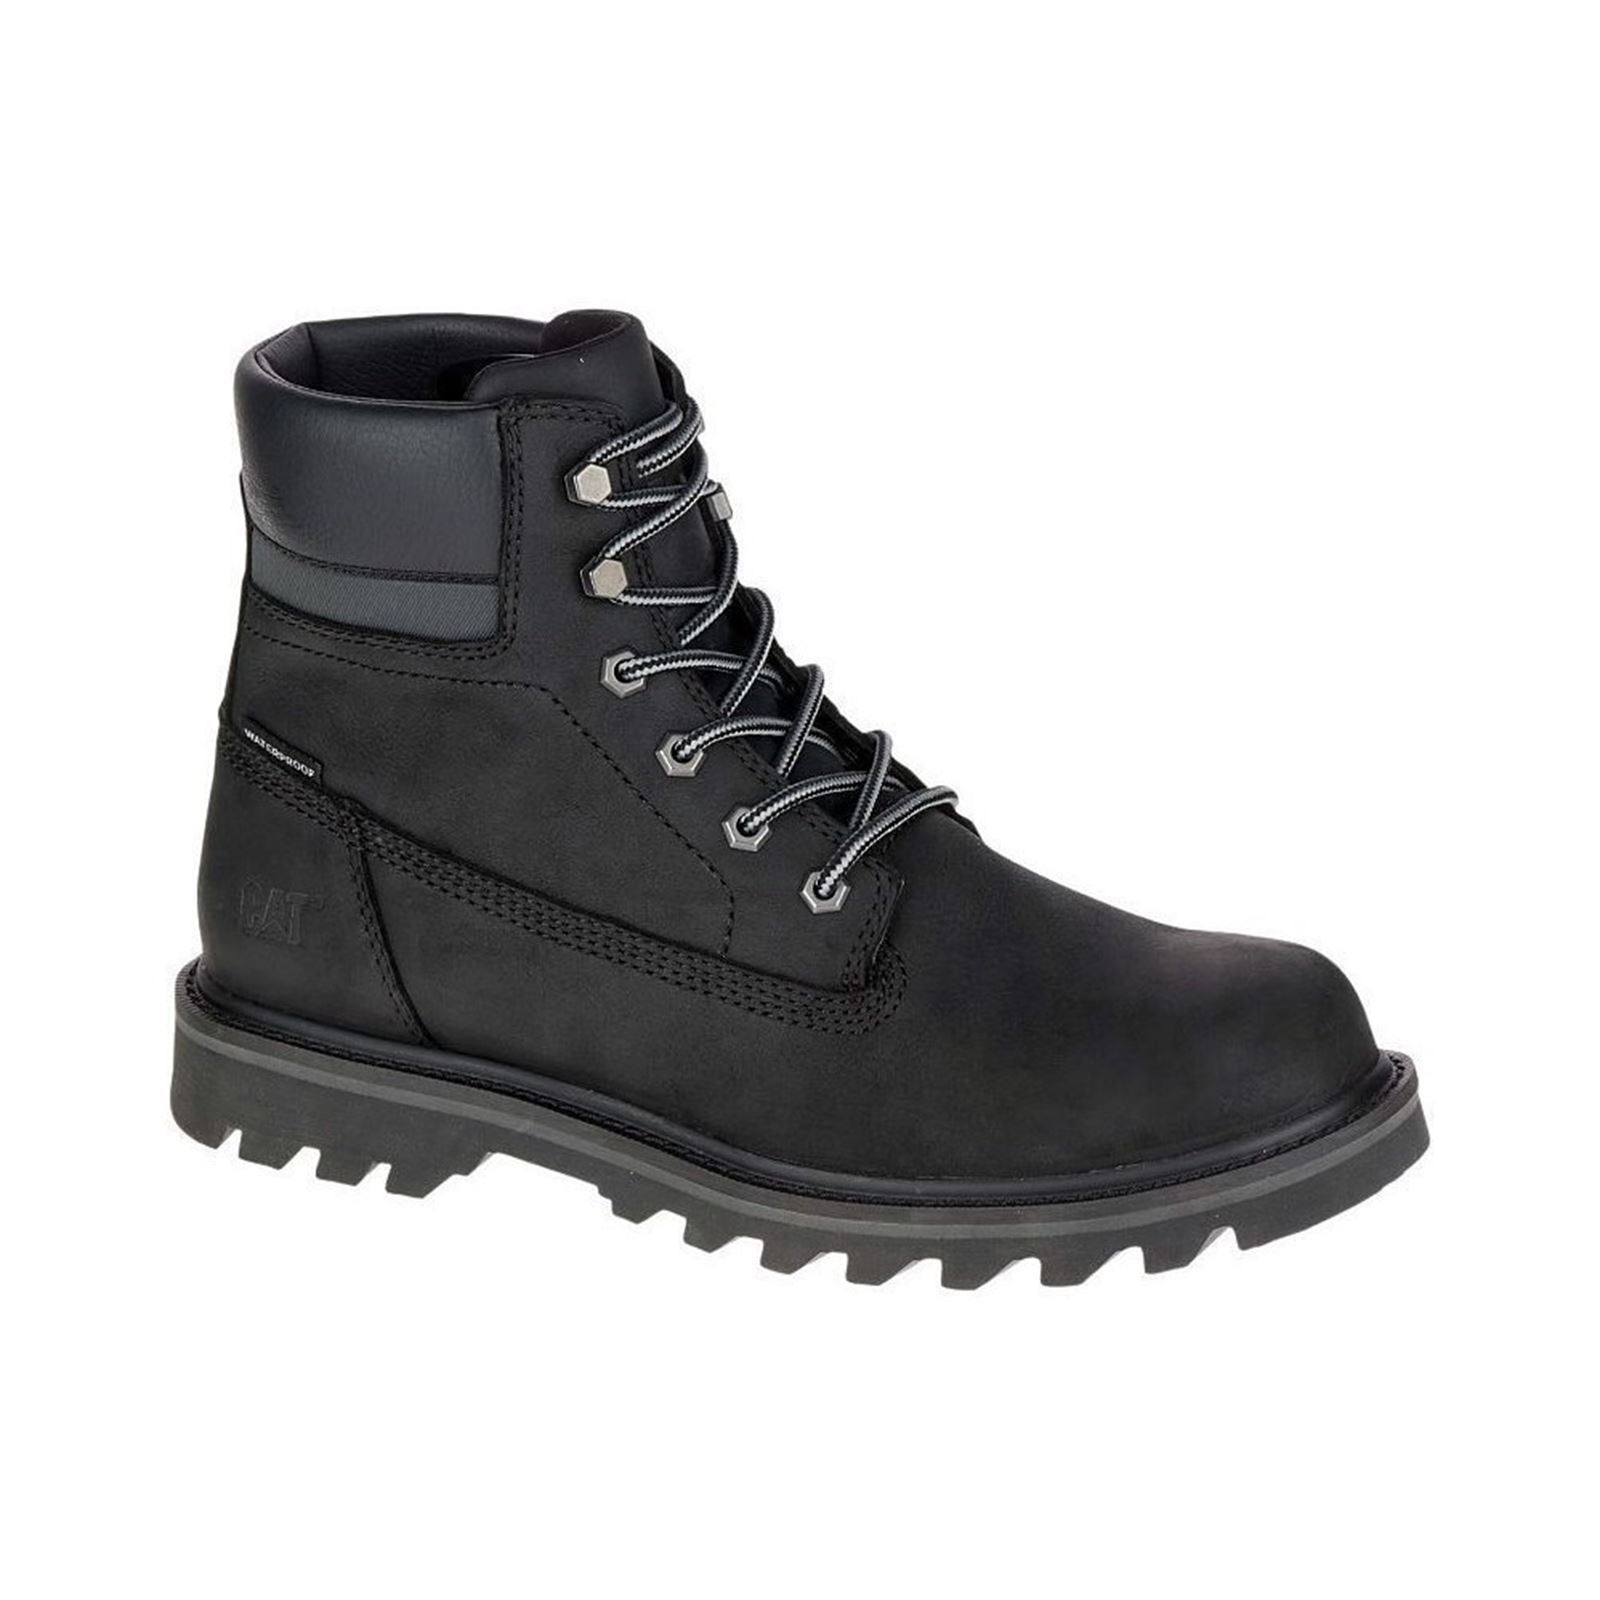 Bottines Cat Bottines Deplete Cat Cat Deplete Noir Noir Bottines Noir Deplete Deplete Bottines Cat 8wOXn0Pk